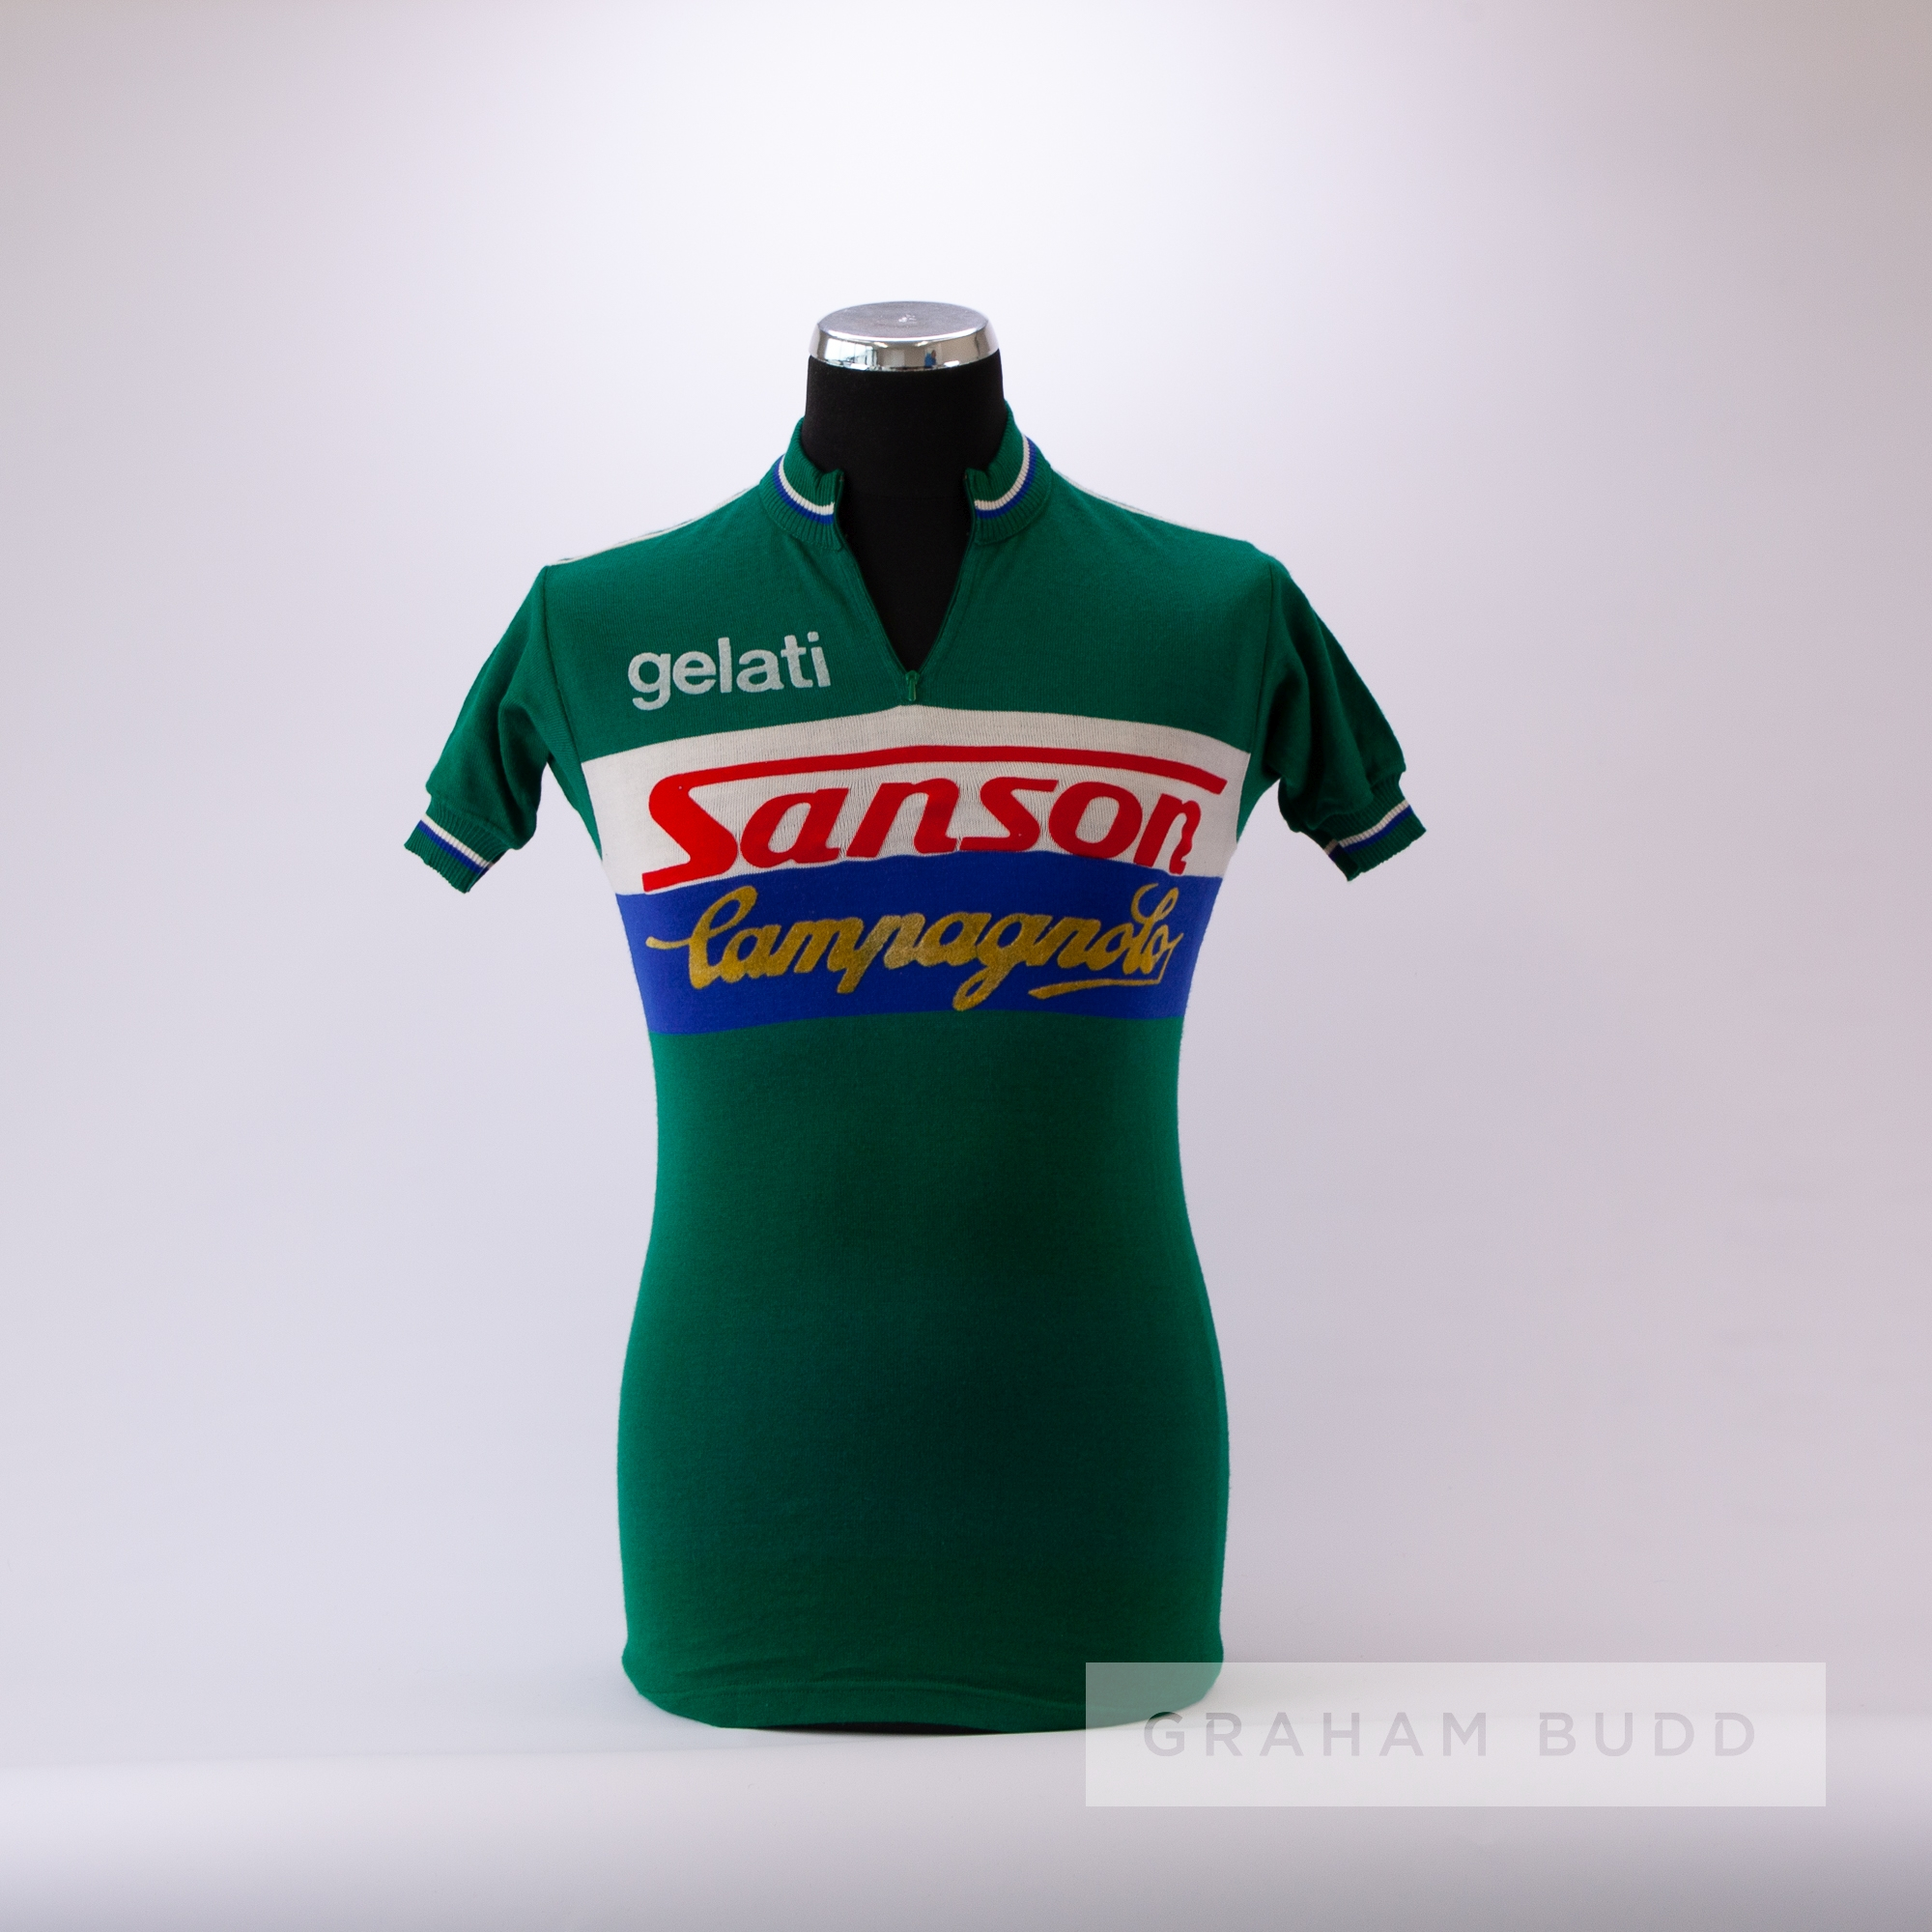 1970s green, white and blue vintage Sanson Campagnolo Cycling team race jersey, scarce, wool and - Image 3 of 4